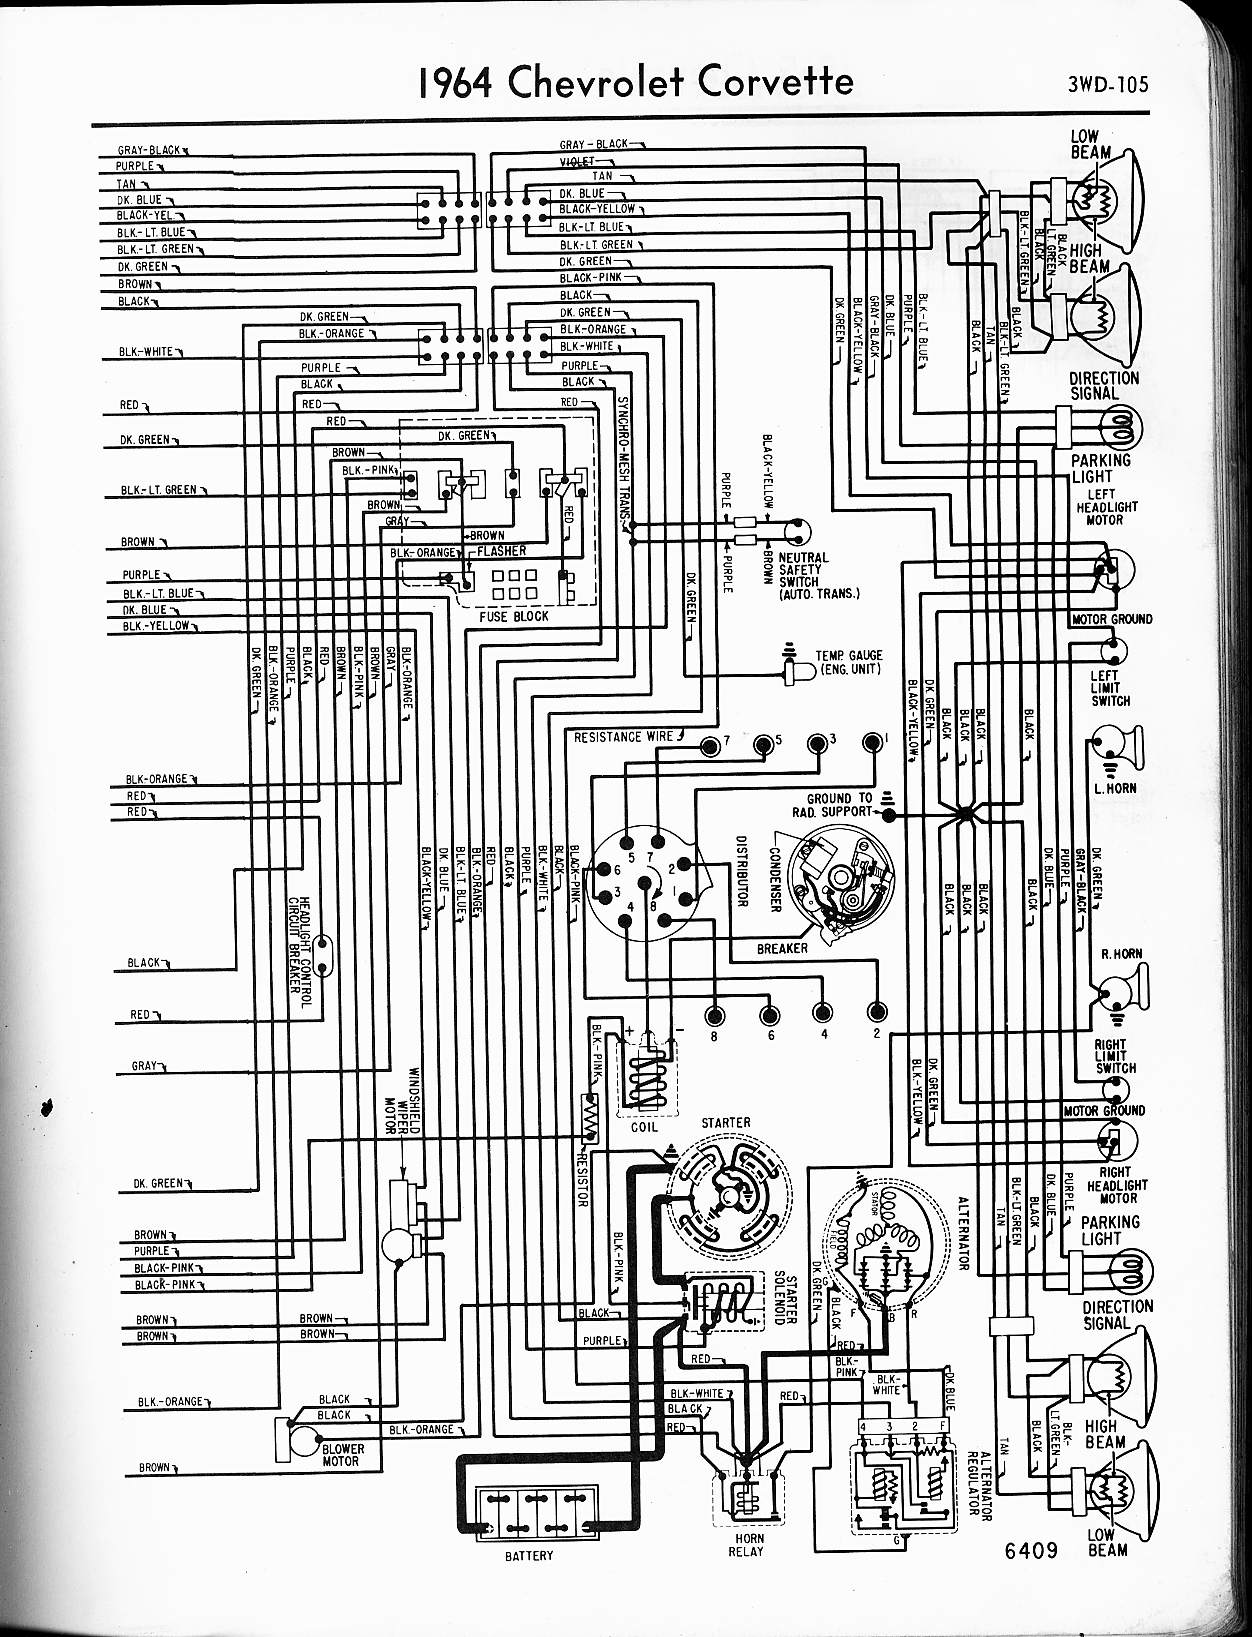 64 Et Wiring Diagram Archive Of Automotive 65 Hp Mercury Outboard Motor 57 Chevy Diagrams Rh Oldcarmanualproject Com Chevelle Falcon